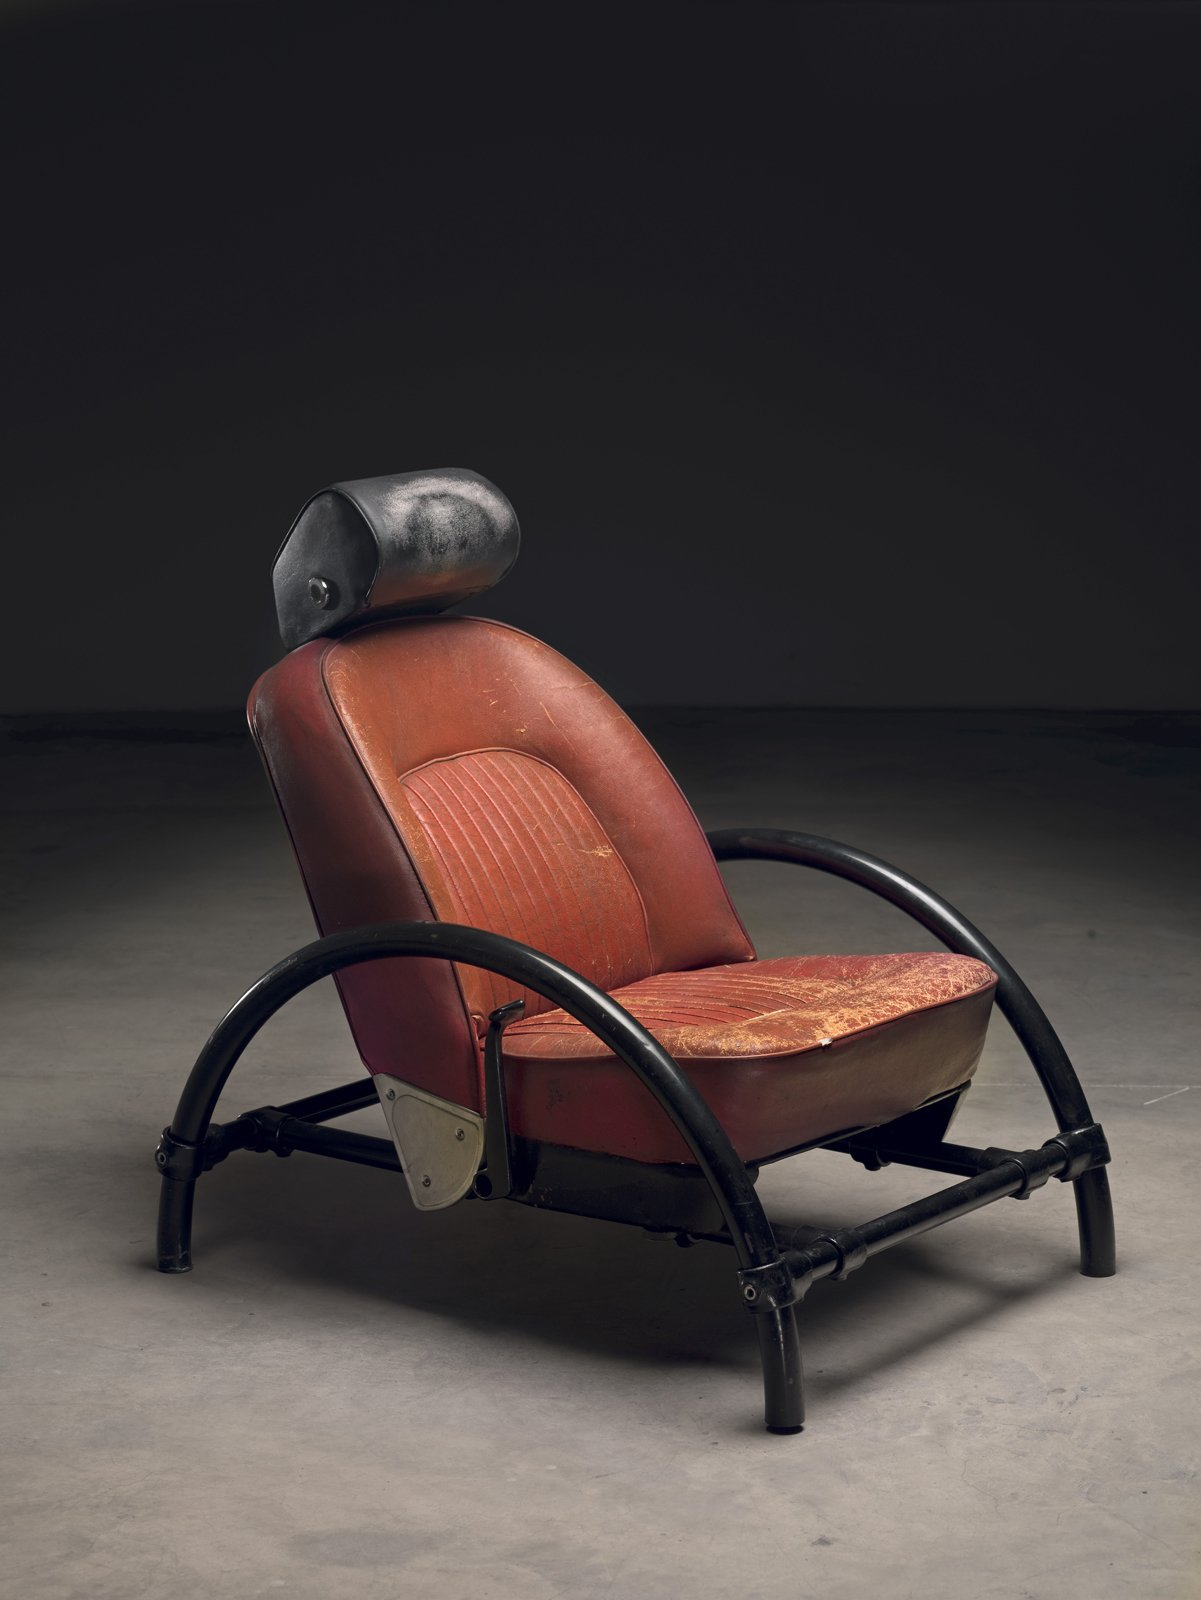 Rover Chair (1981)  Photo by Erik and Petra Hesmerg and courtesy of Private Collection, Maastricht, and the   Museum of Modern Art  Photo 1 of 28 in Ron Arad: No Discipline Preview